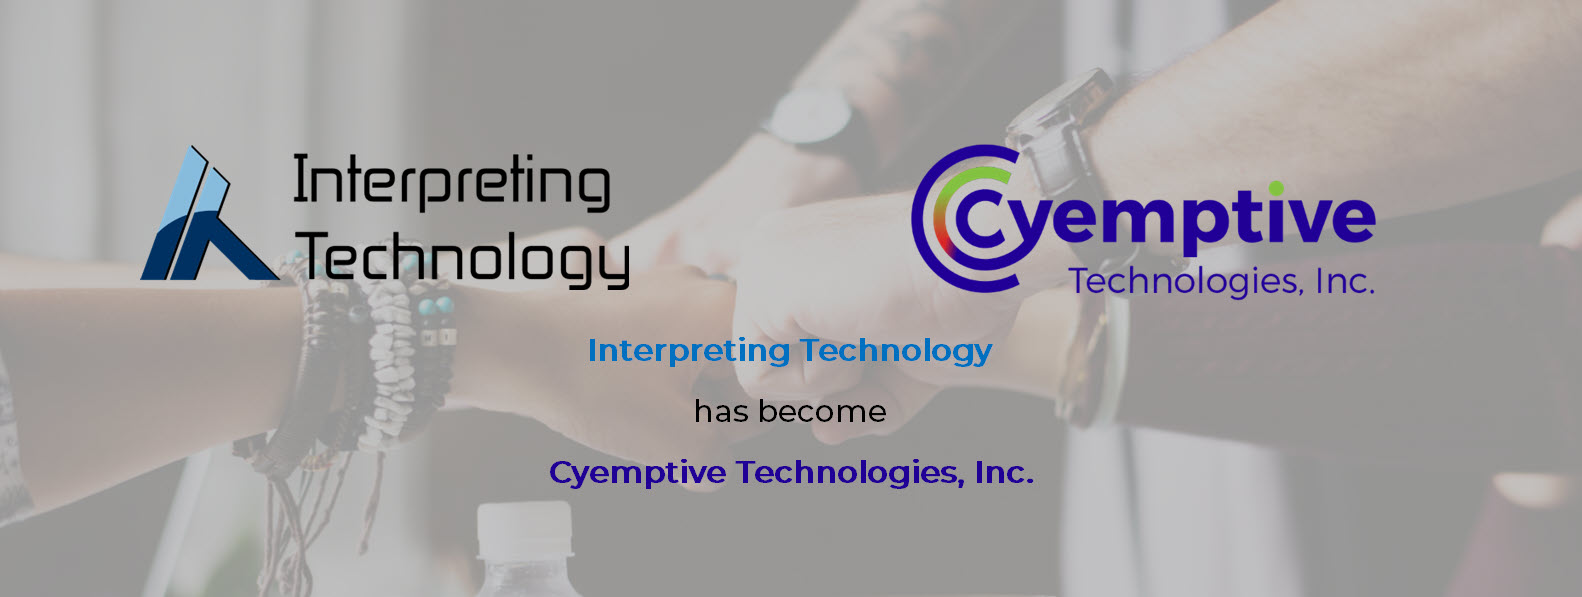 Interpreting Technology has become Cyemptive Technologies, Inc.